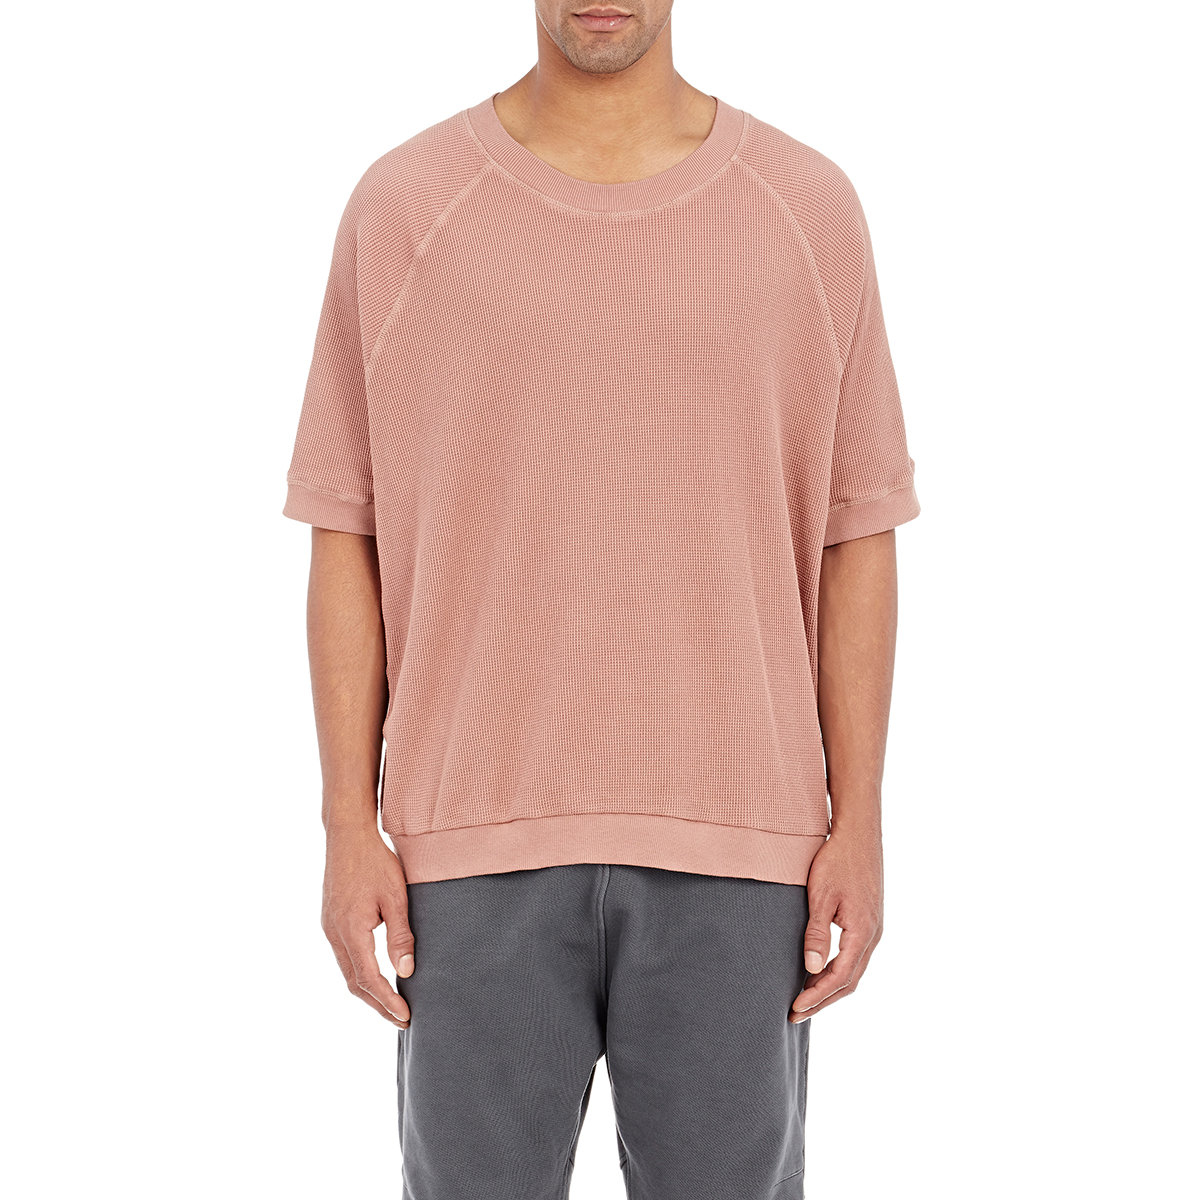 Yeezy Thermal-Knit T-Shirt In Nude Natural For Men - Lyst-1332